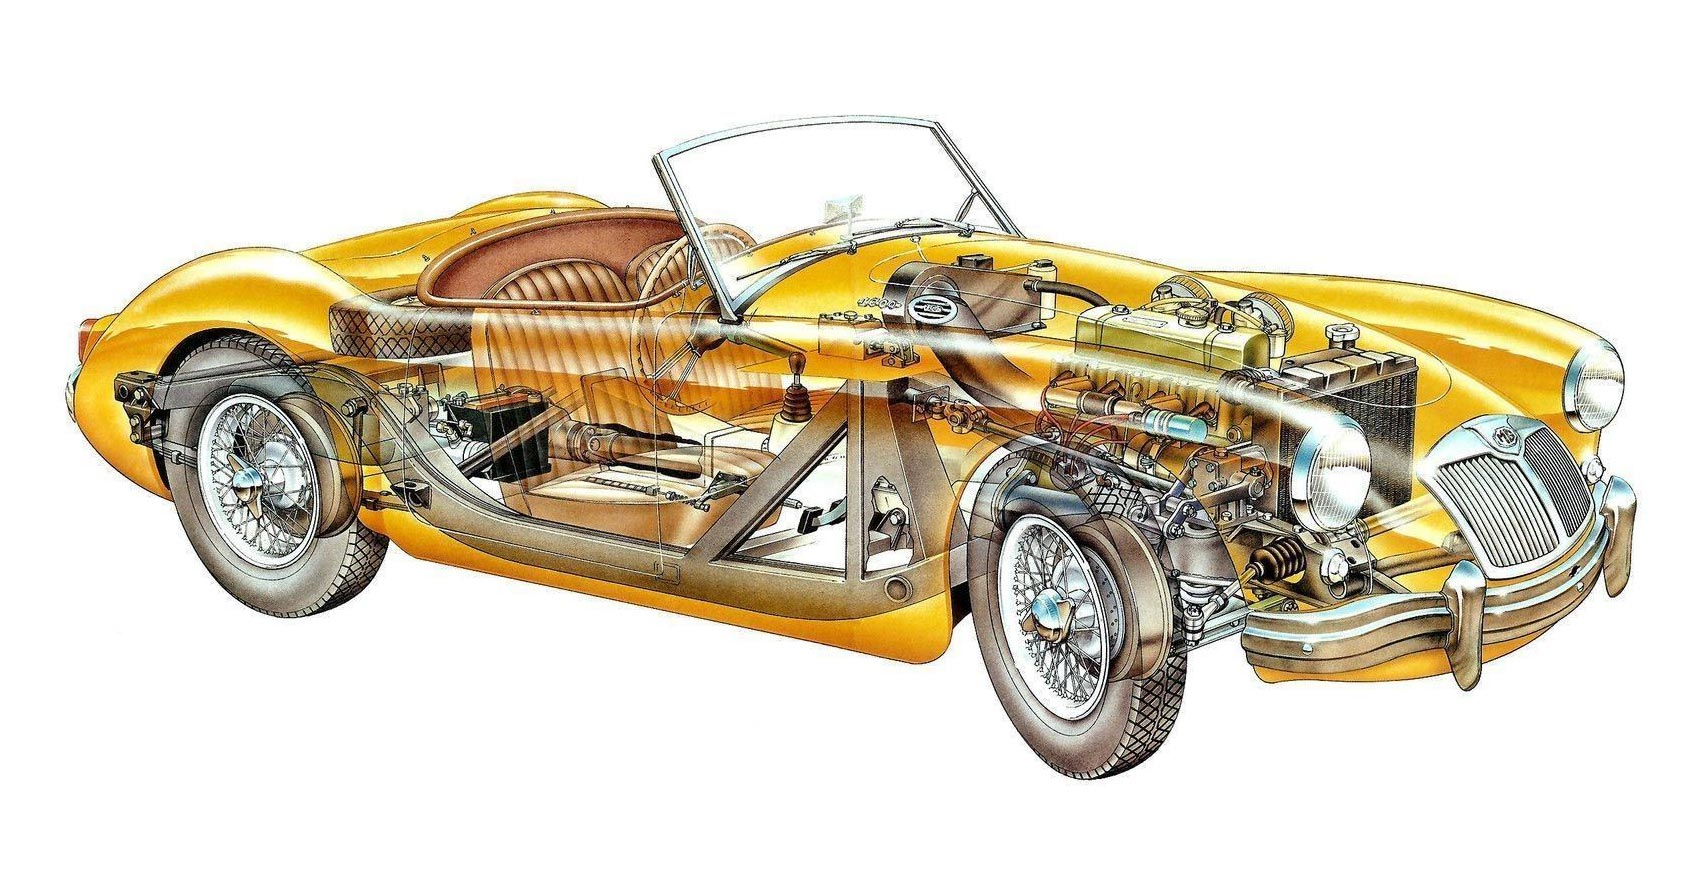 MG A 1600 cutaway drawing